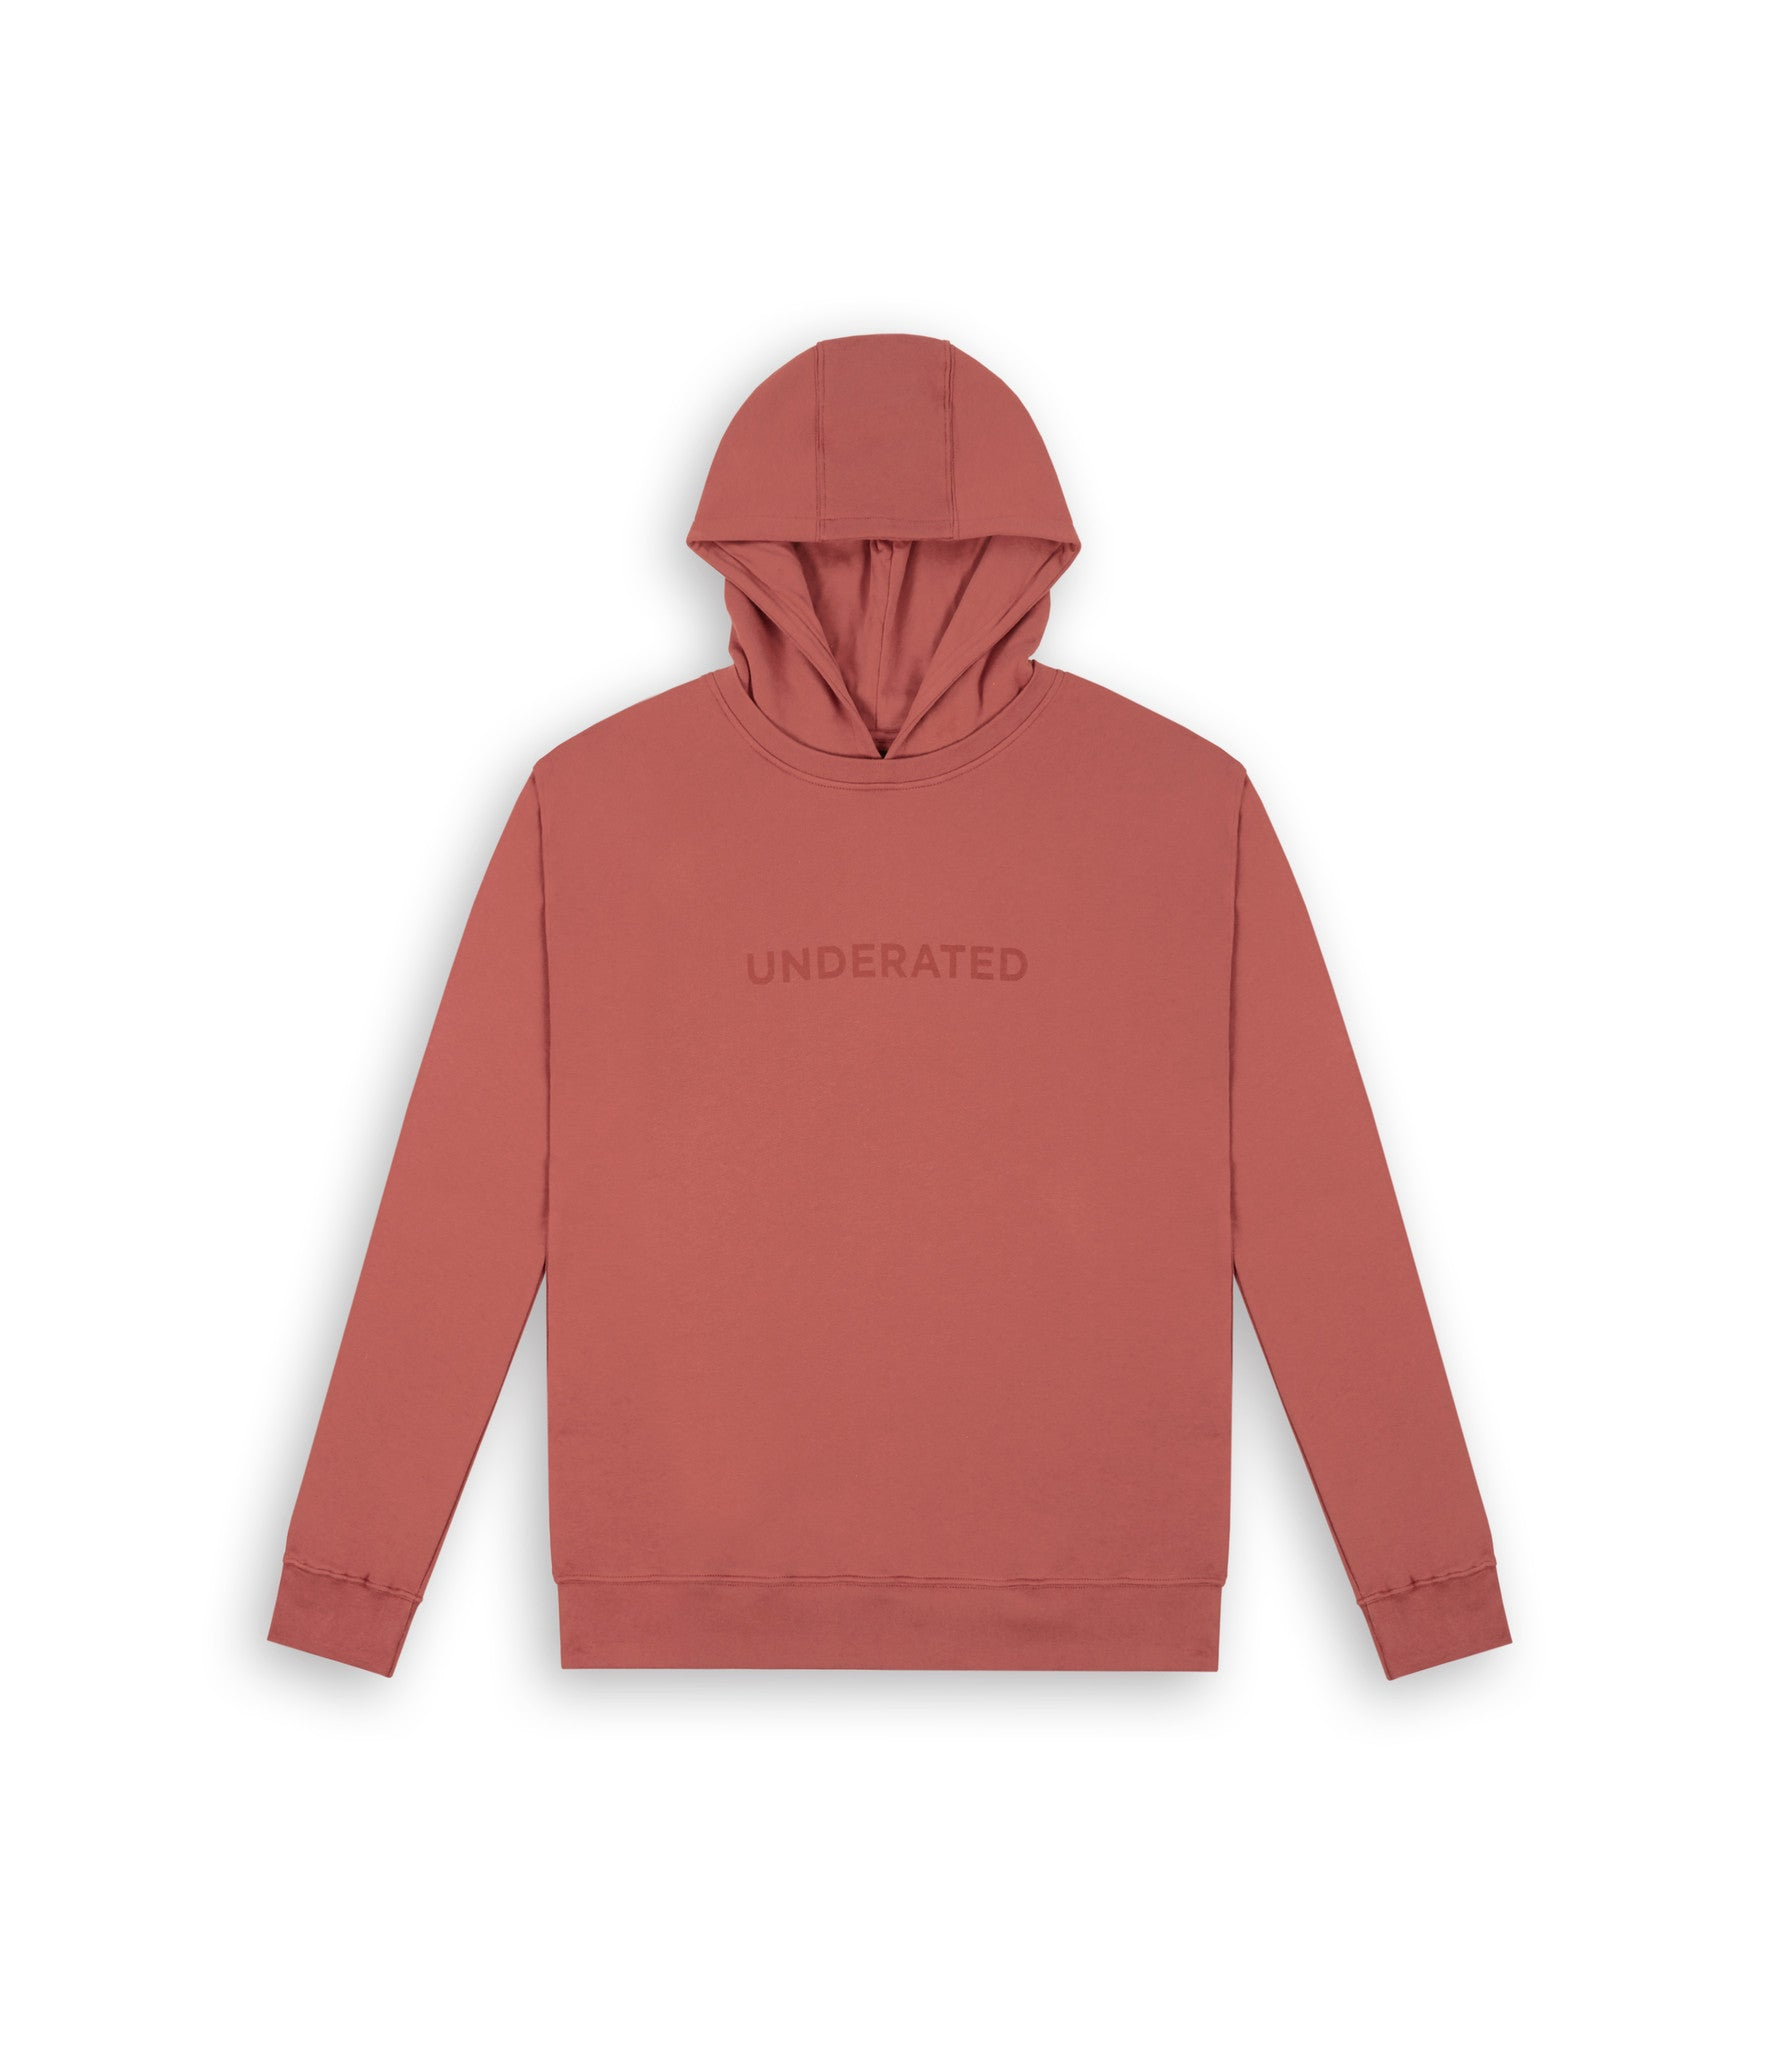 HD395 Essential Print Hoody - Rust - underated london - underatedco - 2